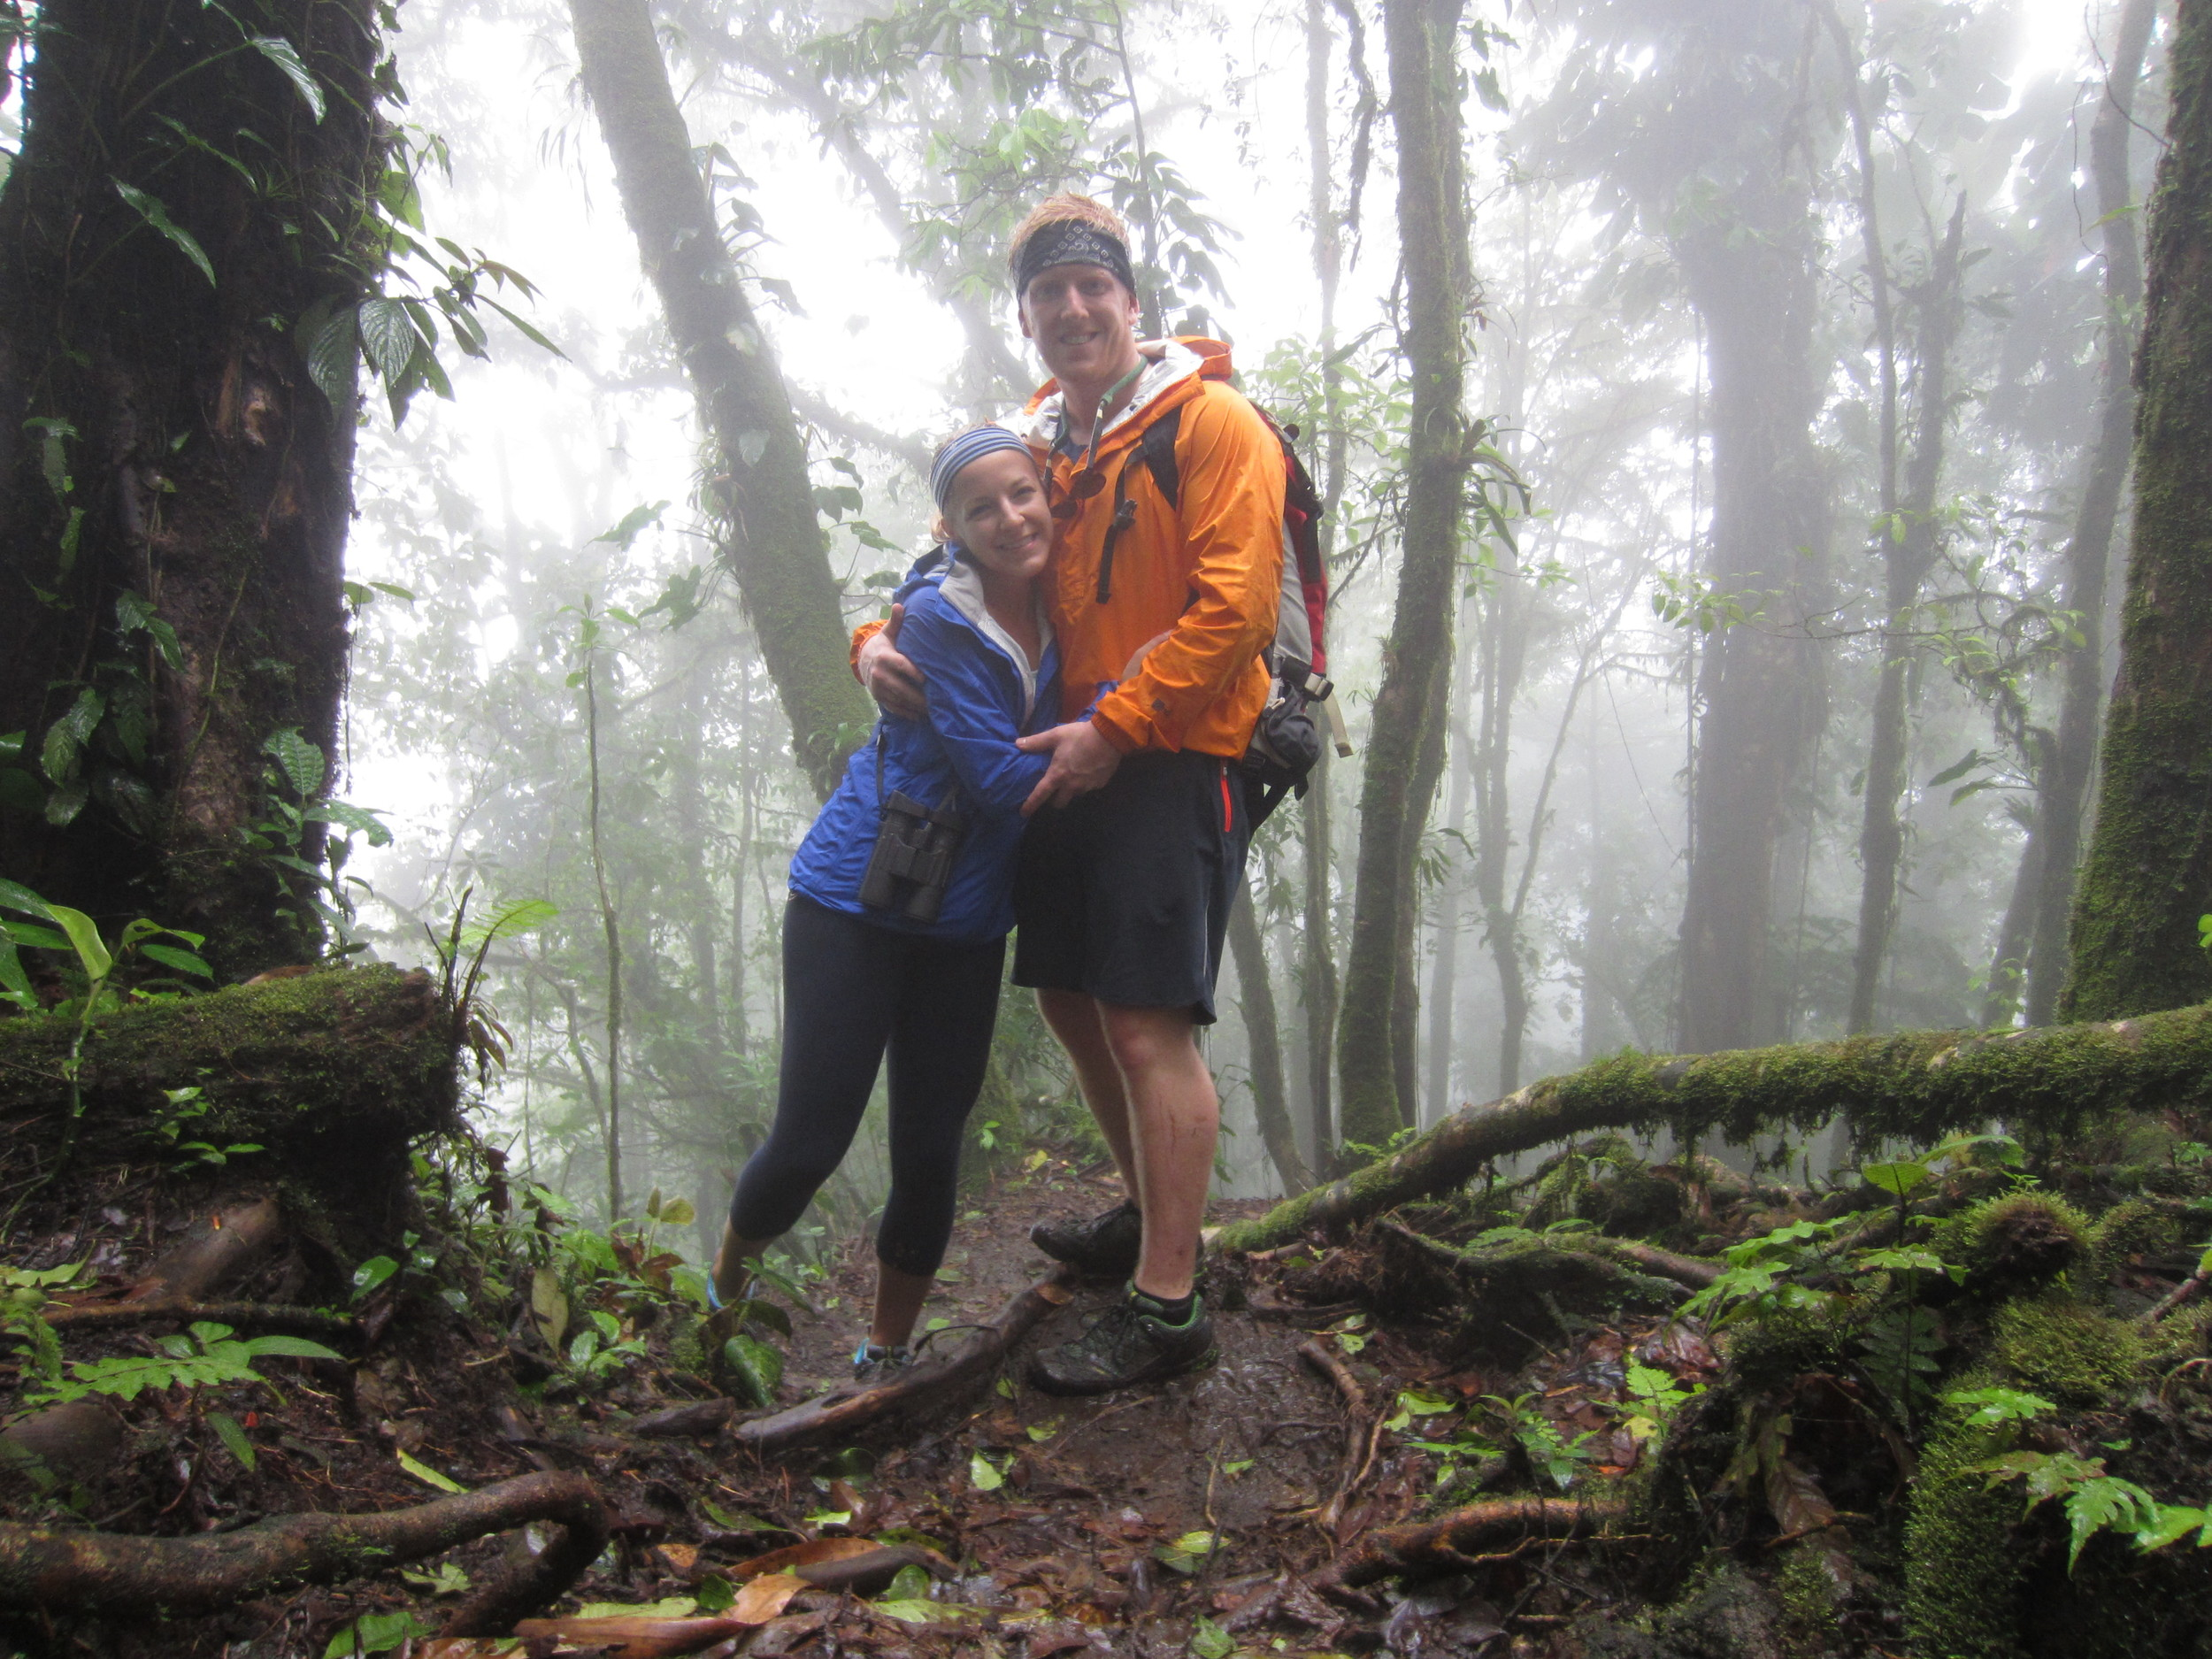 Hiking near the Arenal Volcano, Costa Rica